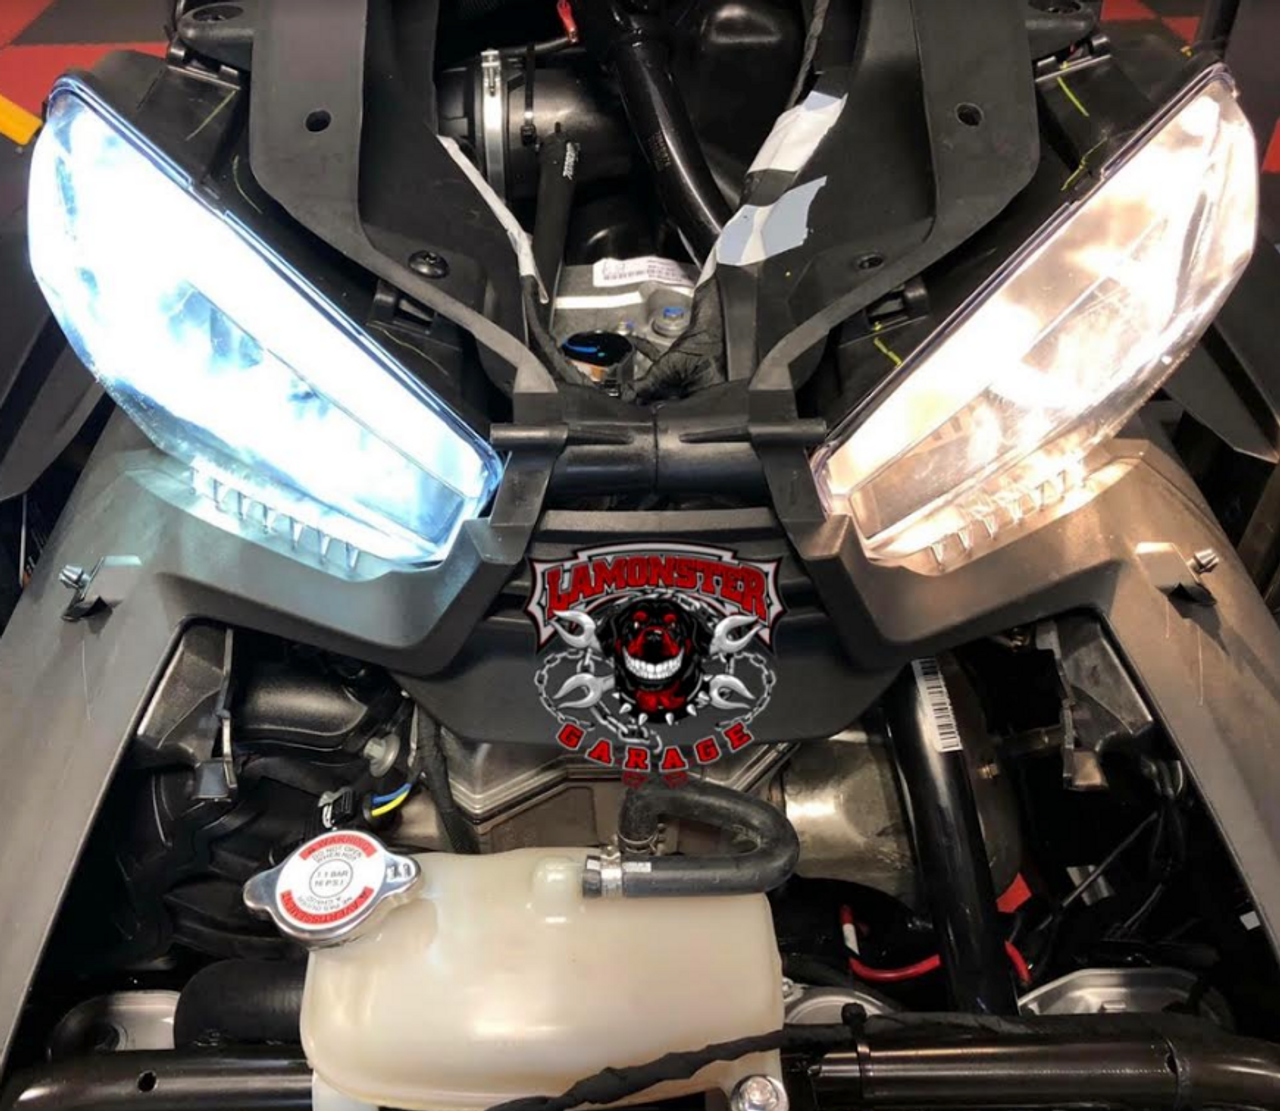 H4 LED Headlight for the Can-Am Ryker